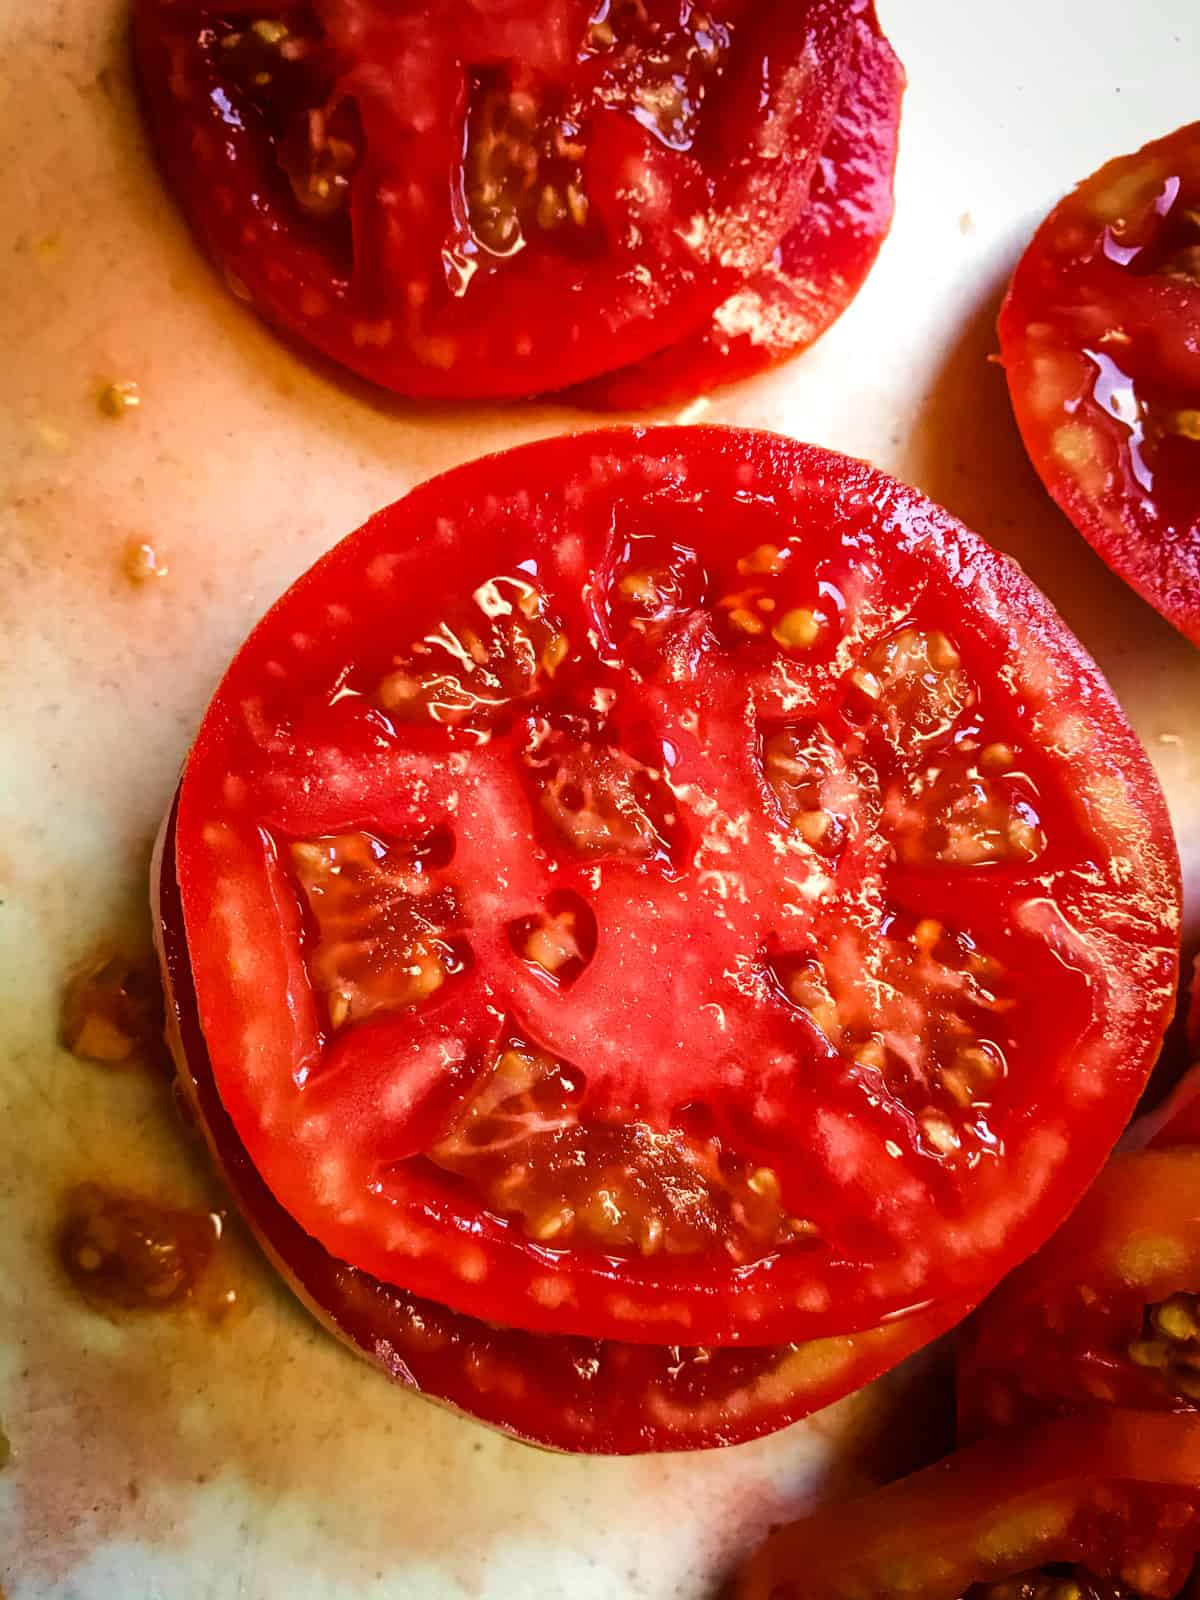 Sliced ripe red tomato for BLT.